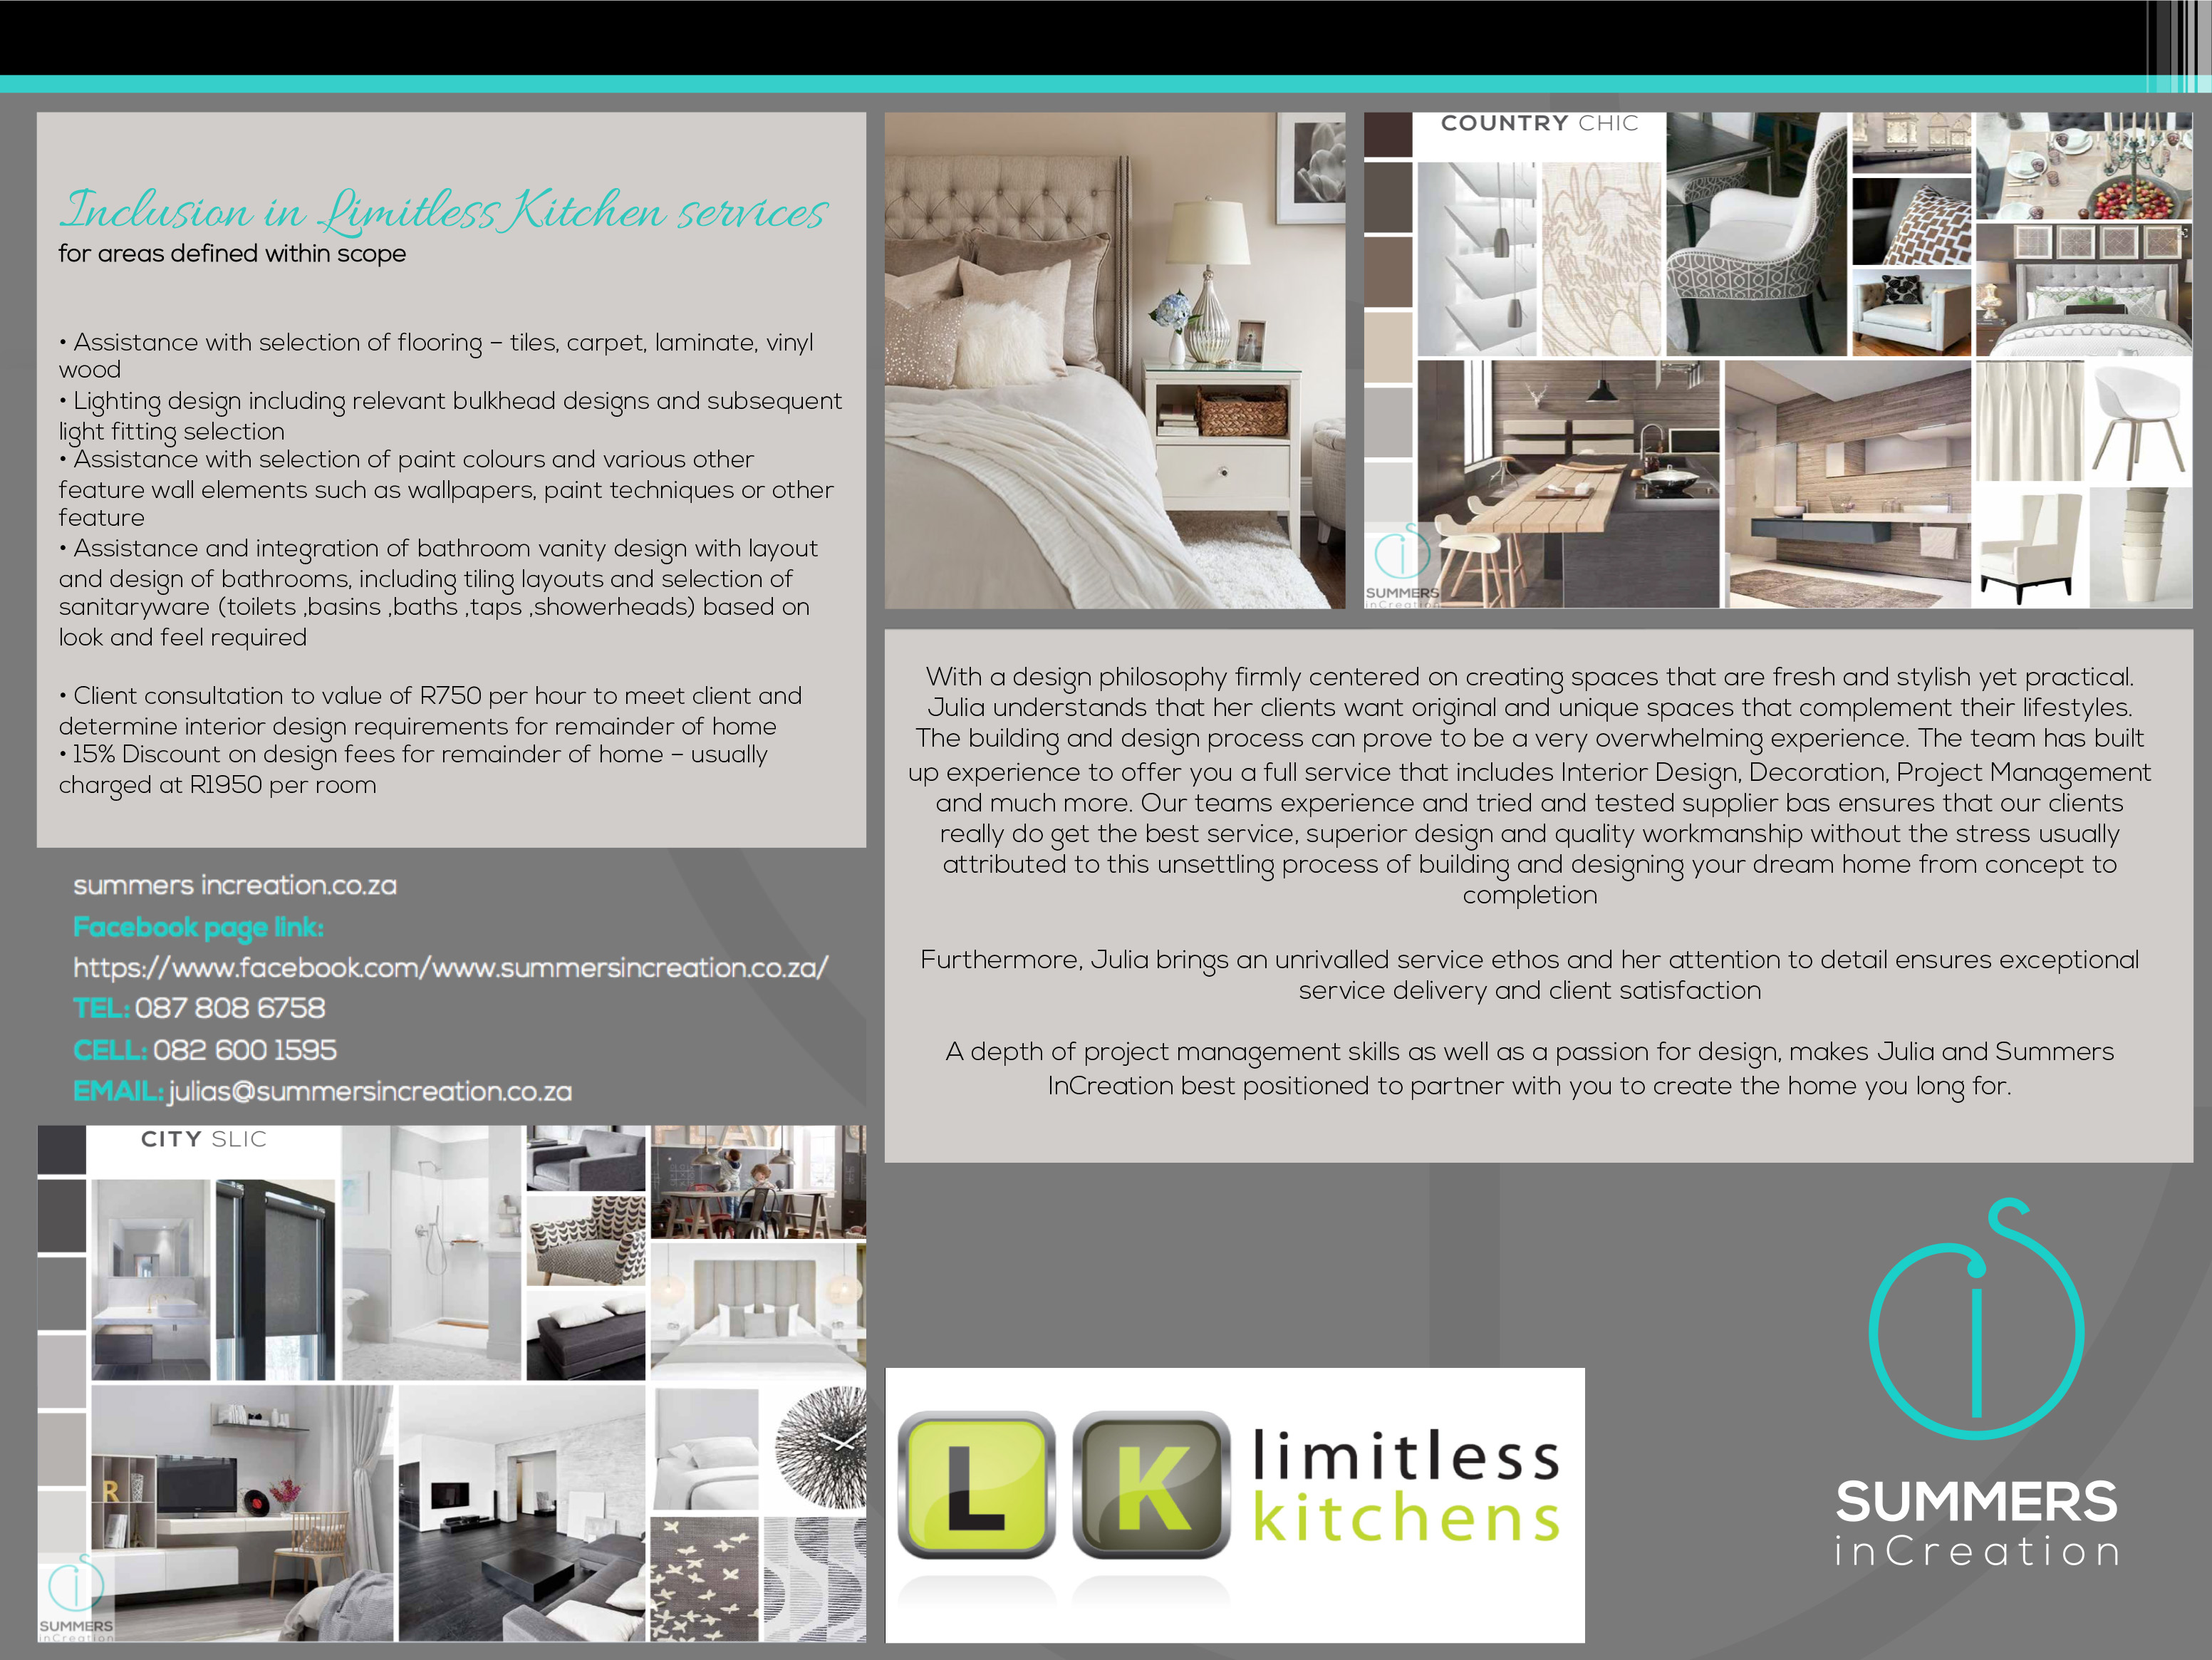 Promotions Limitless Kitchens